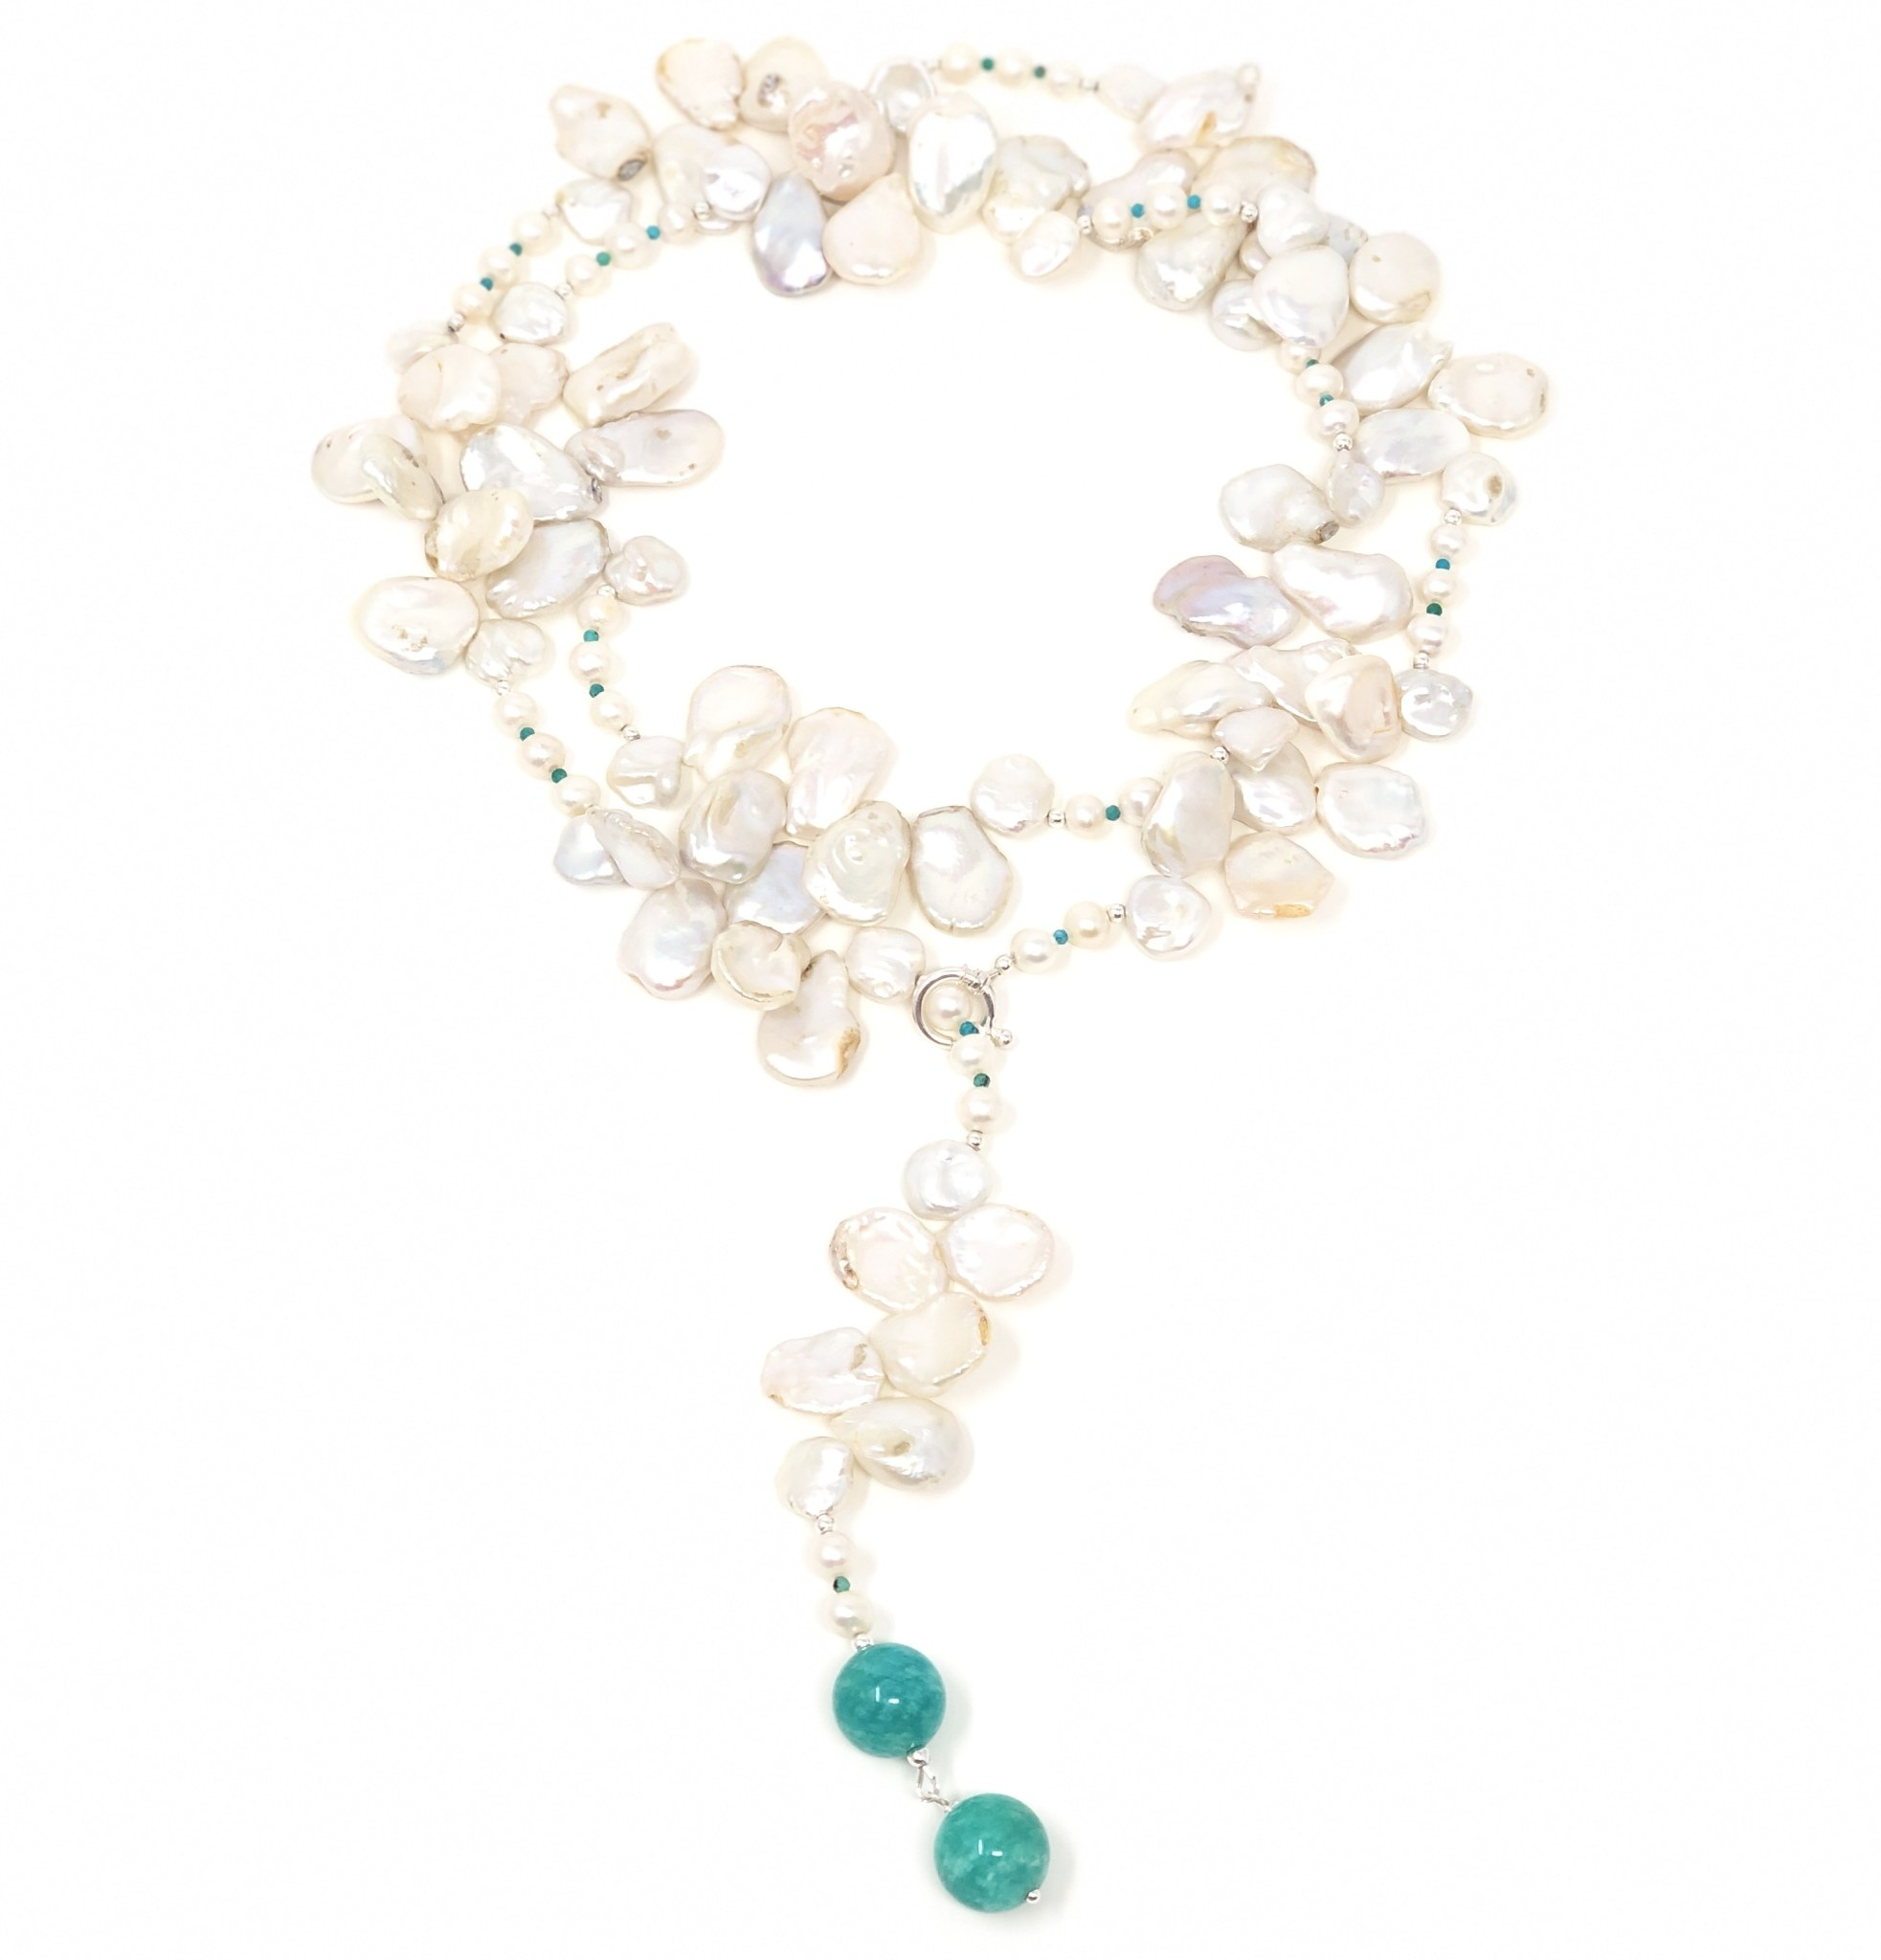 Keshi Pearl & Amazonite Lariat/Necklace